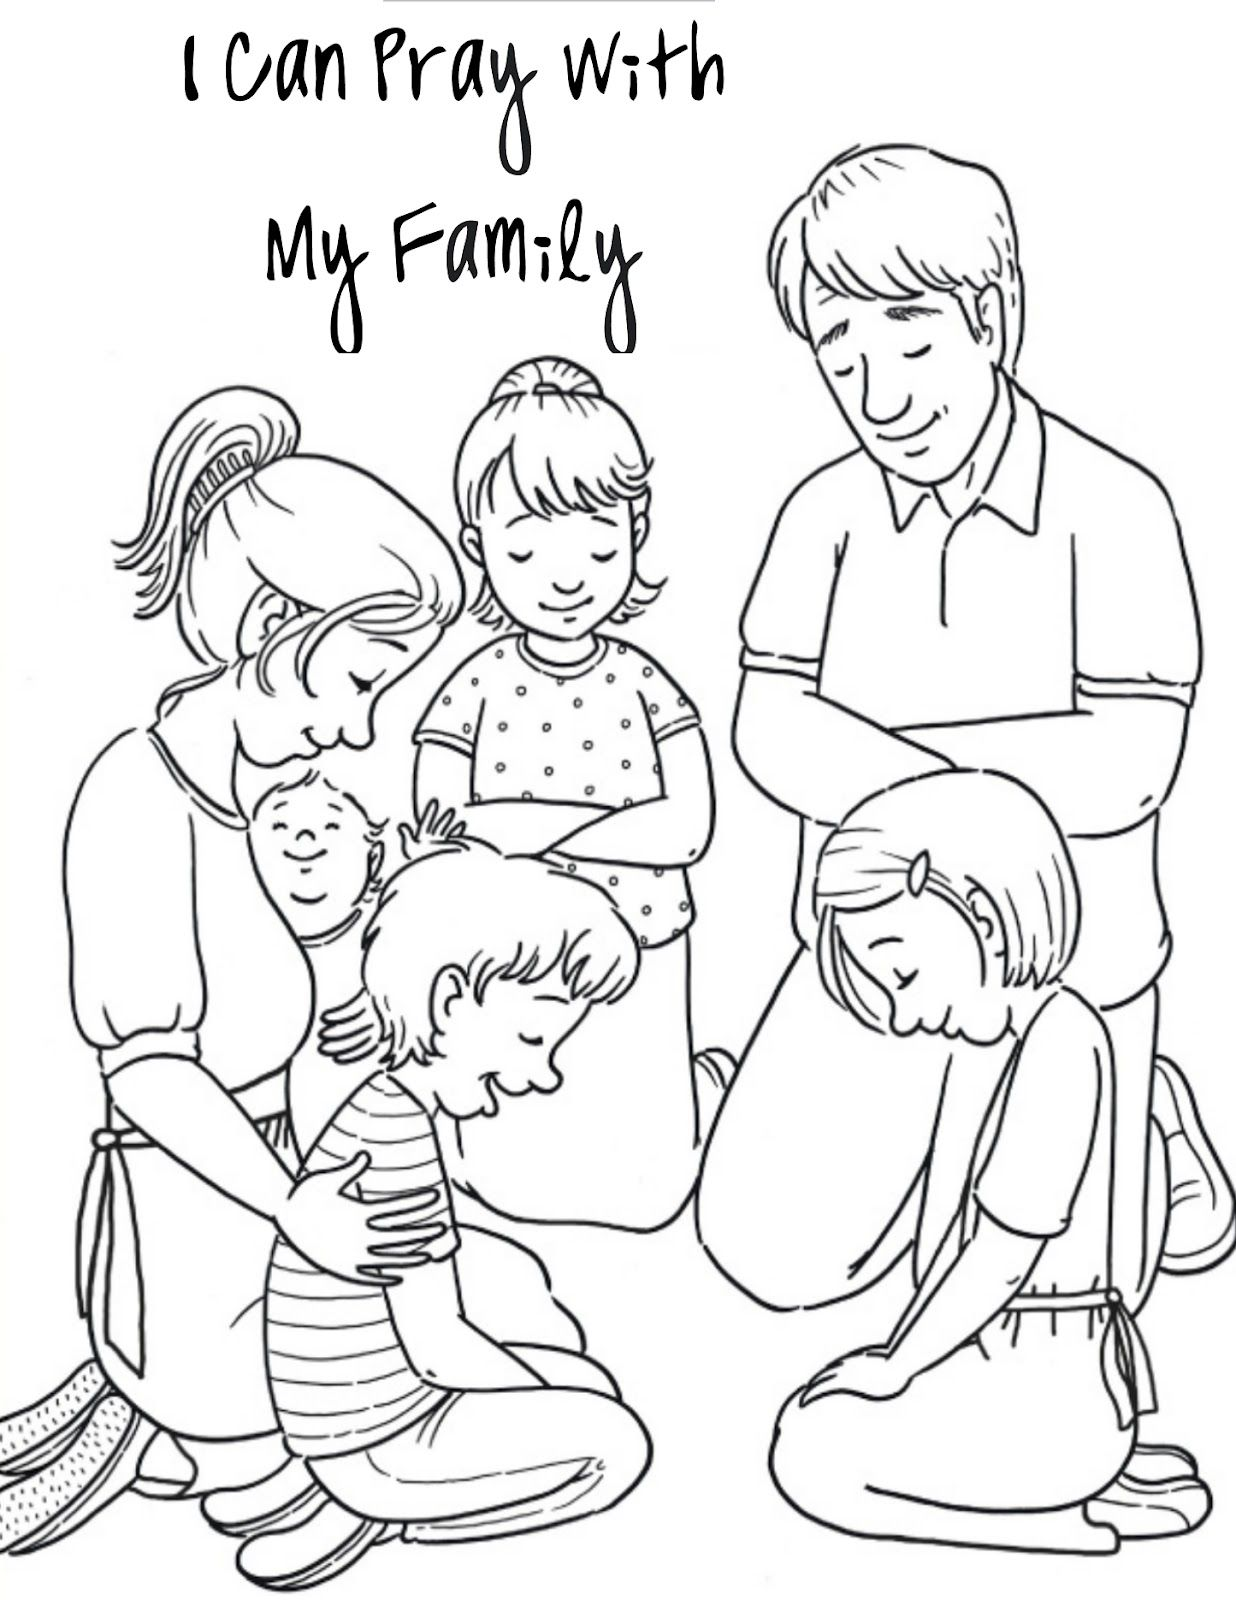 Singing Sister Sunday School Coloring Pages Lds Coloring Pages Children Praying